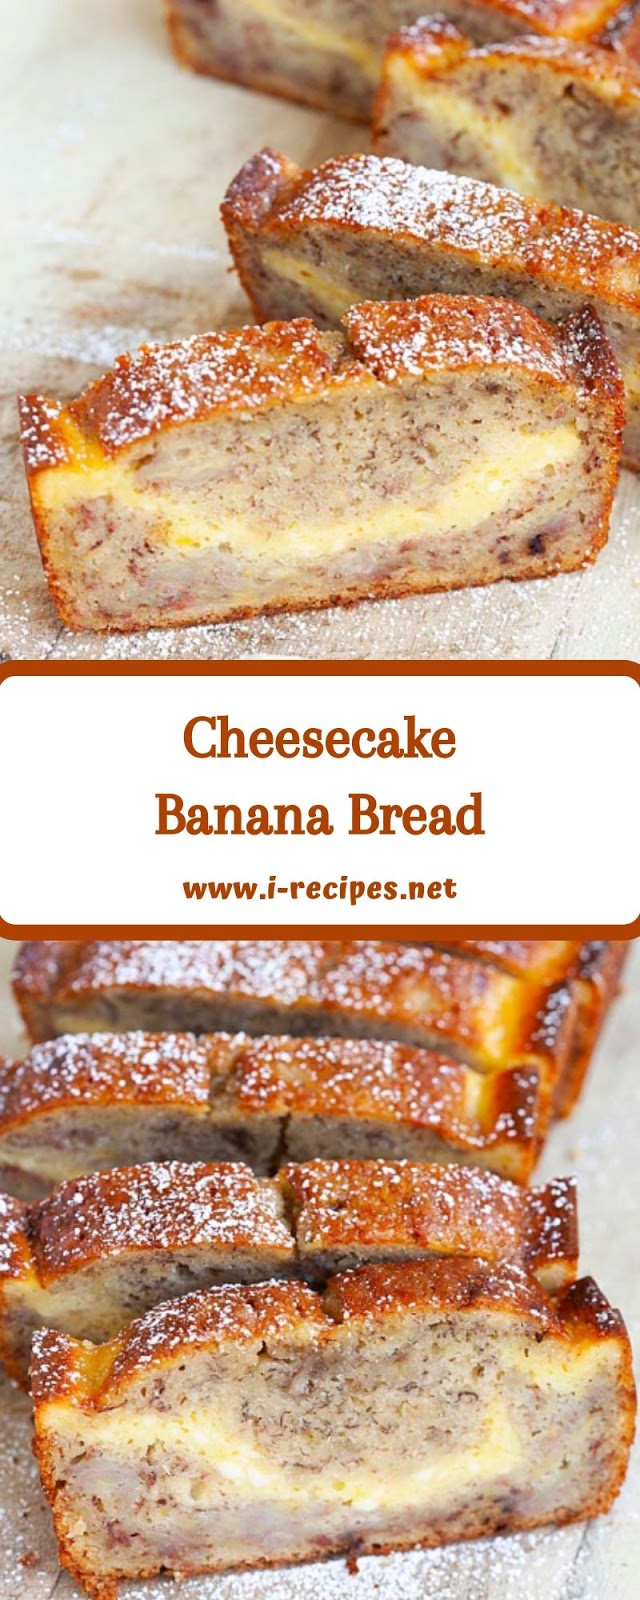 Cheesecake Banana Bread